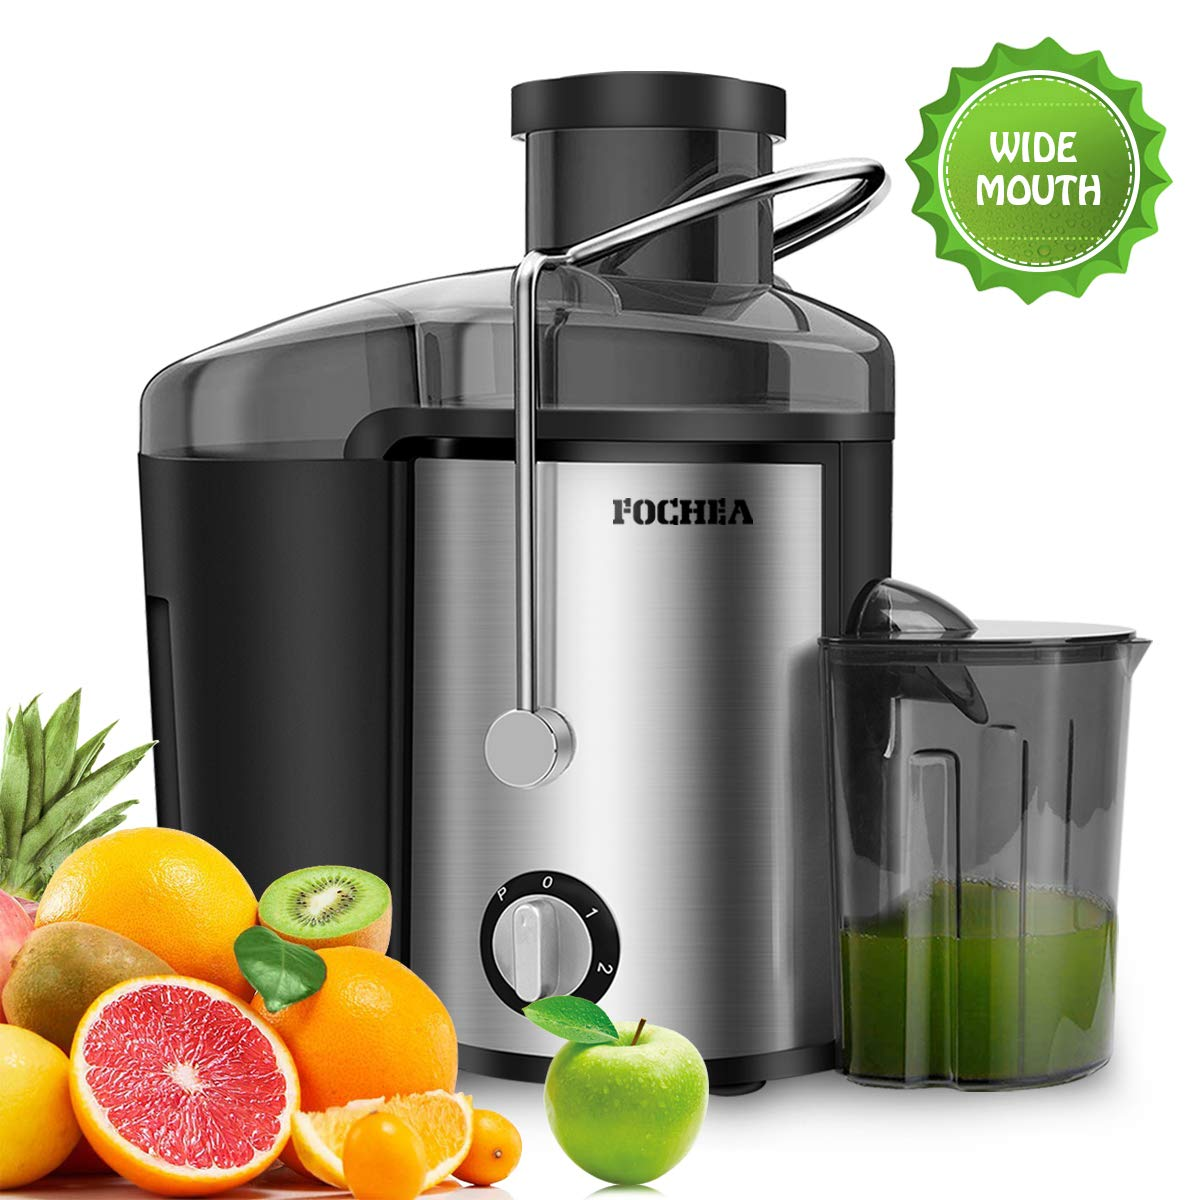 Juicer Wide Mouth Juice Extractor,FOCHEA Juicer Machine,3 Speed Centrifugal Juice For Fruits & Vegetable with Anti-drip Function,Stainless Steel and BPA Free,Easy To Clean